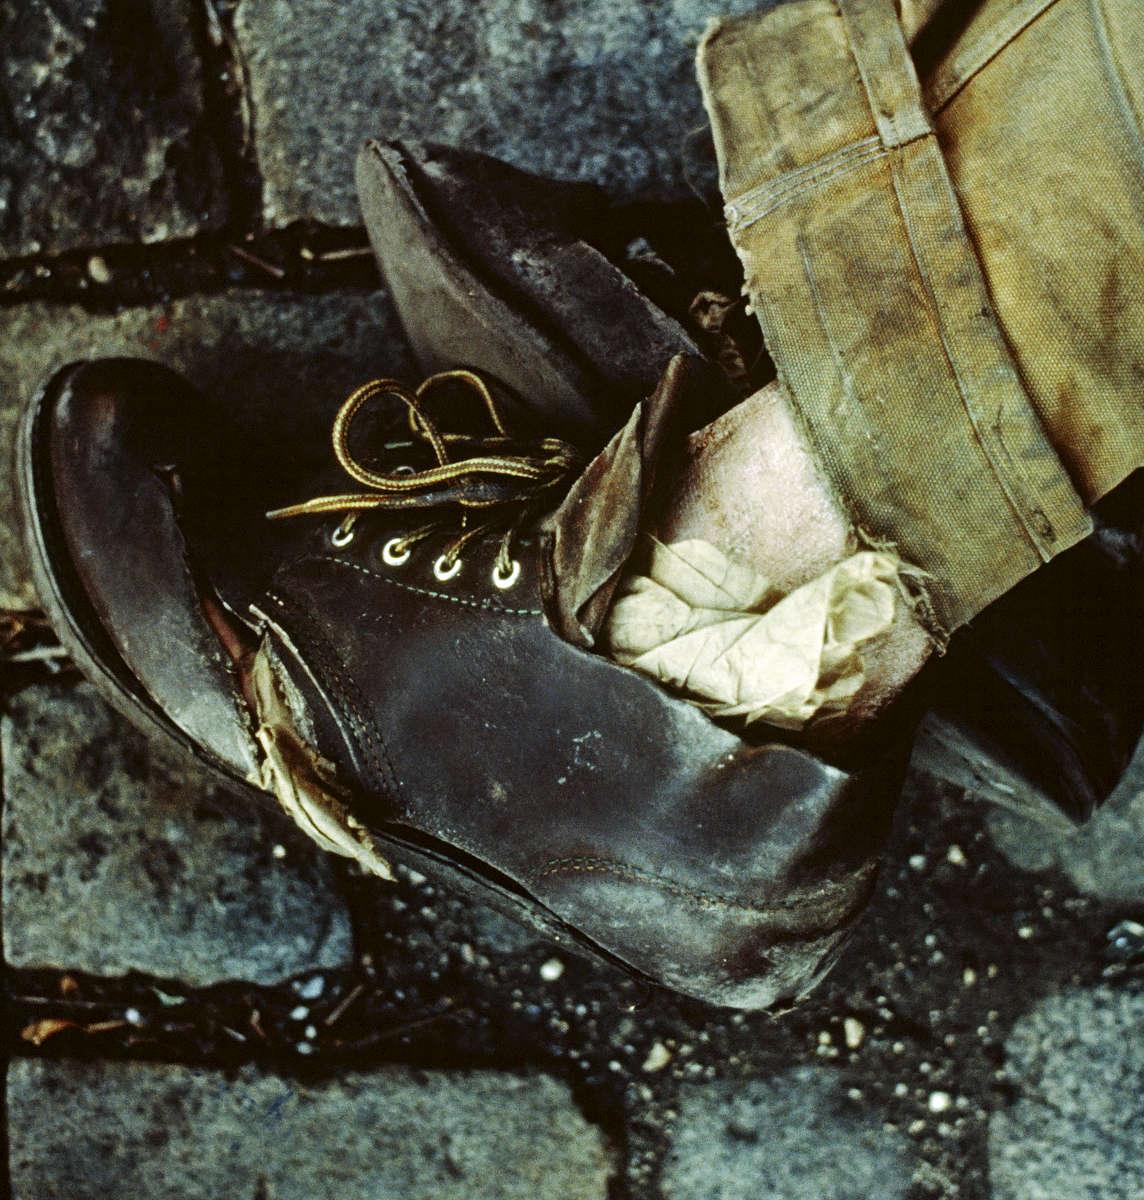 November 1987 - Homeless man sleeping on the streets of New York City, without socks, stuffed paper into his shoes to keep his feet warm in the winter.